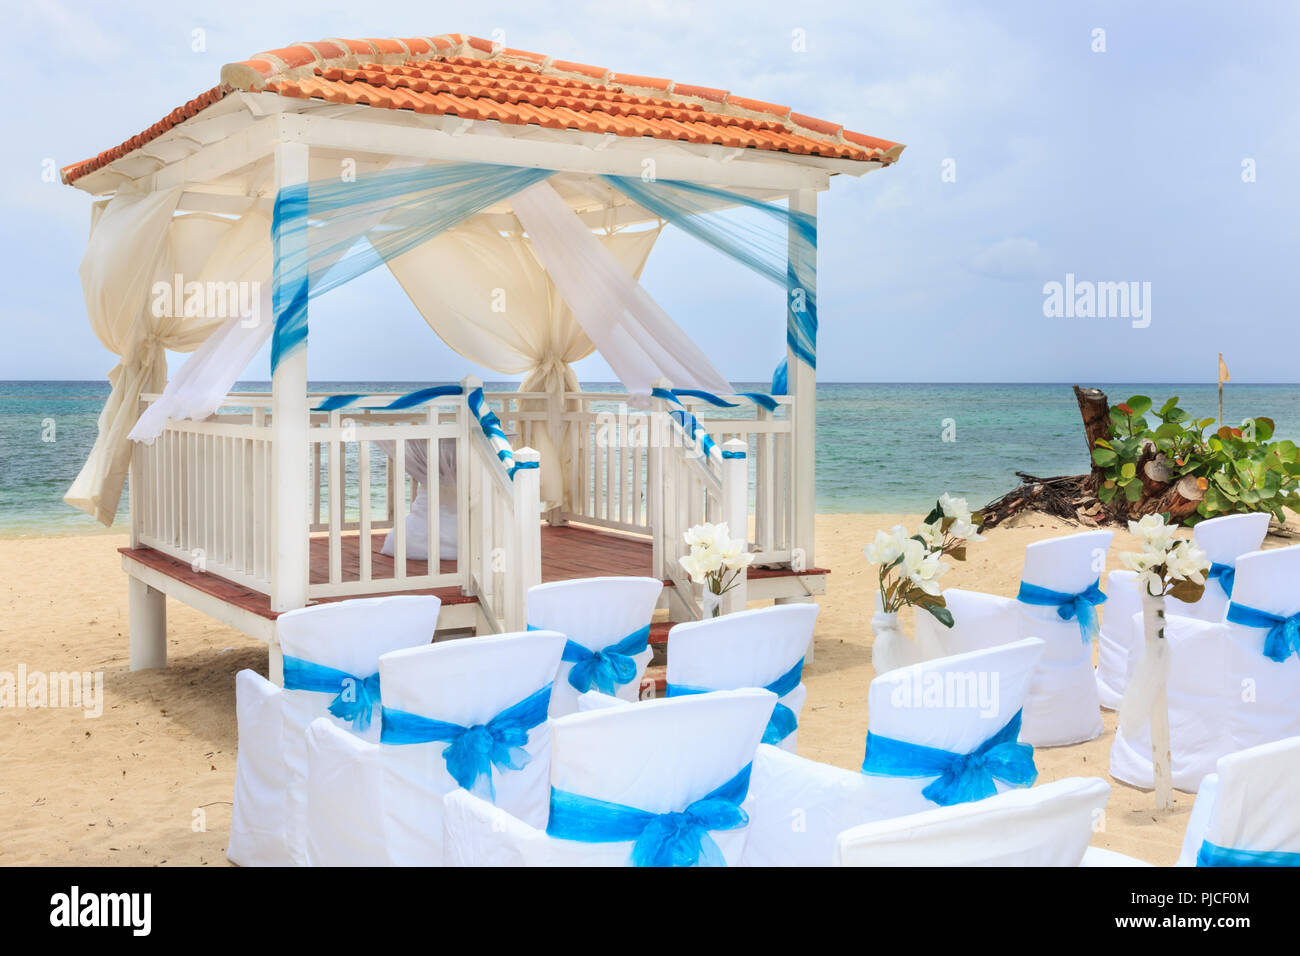 Caribbean Beach Wedding Chapel, Outdoor Venue And Decorated ...